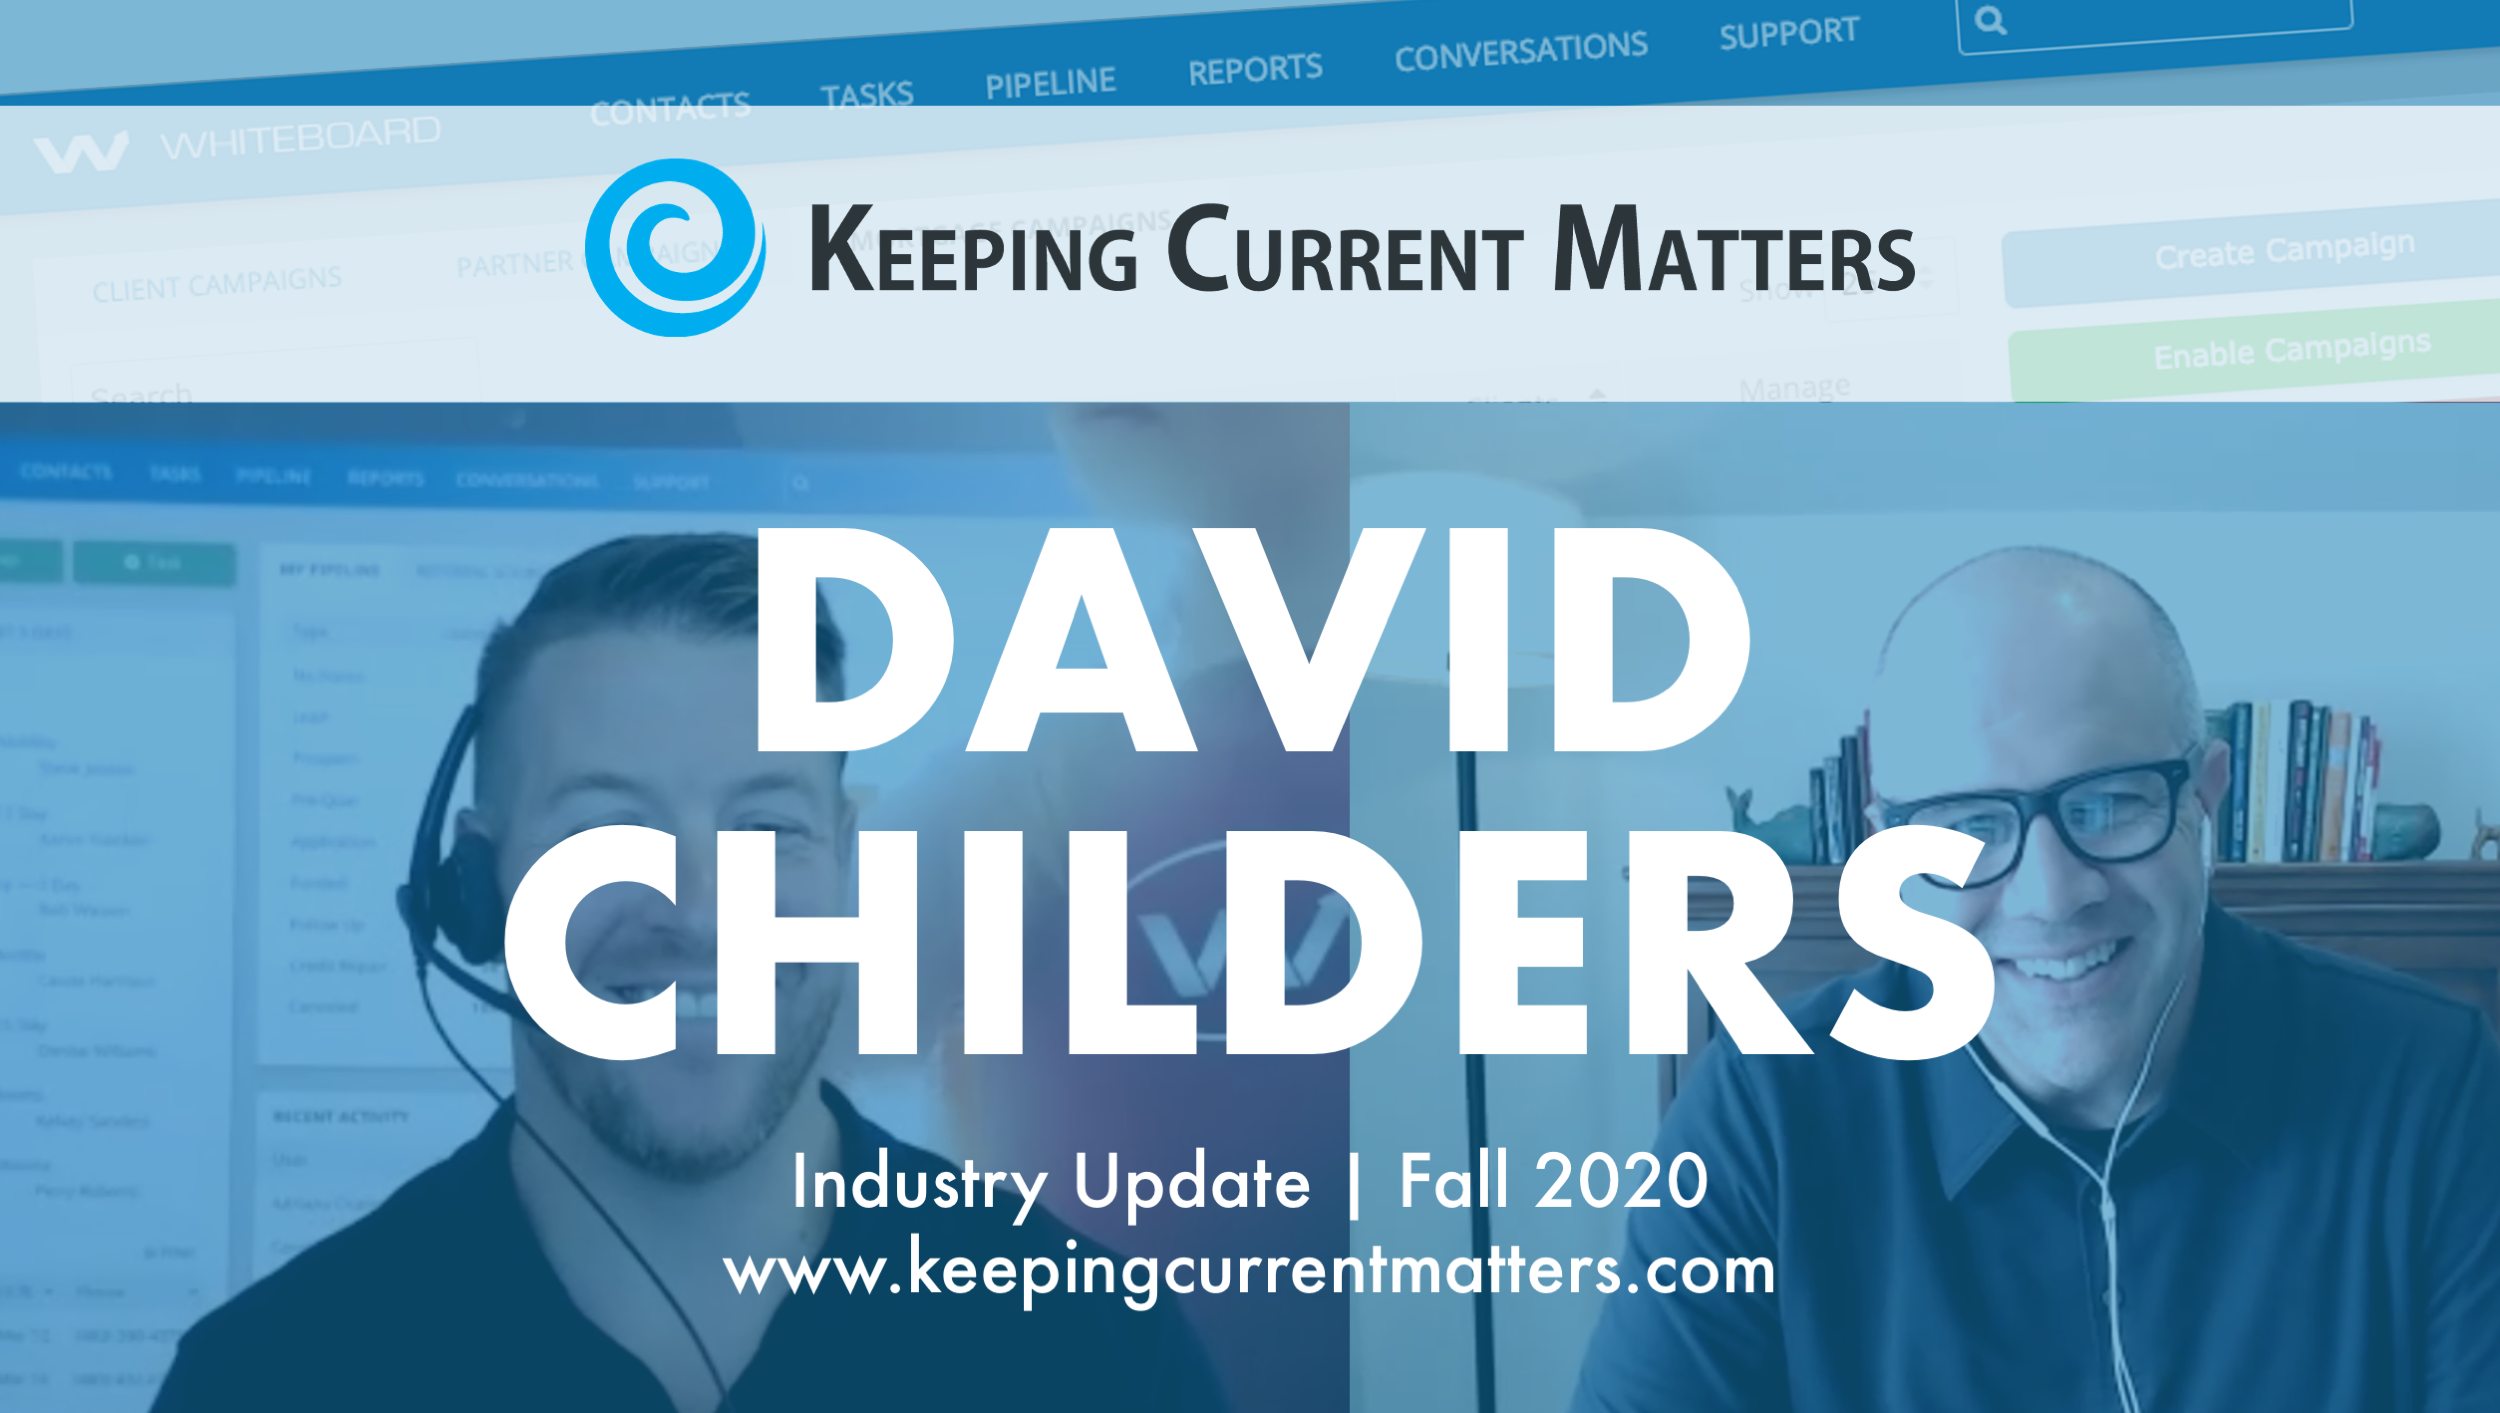 David Childers and Kevin Ducey are pictured side-by-side with a Keeping Current Matters logo overlaid and a blue tint